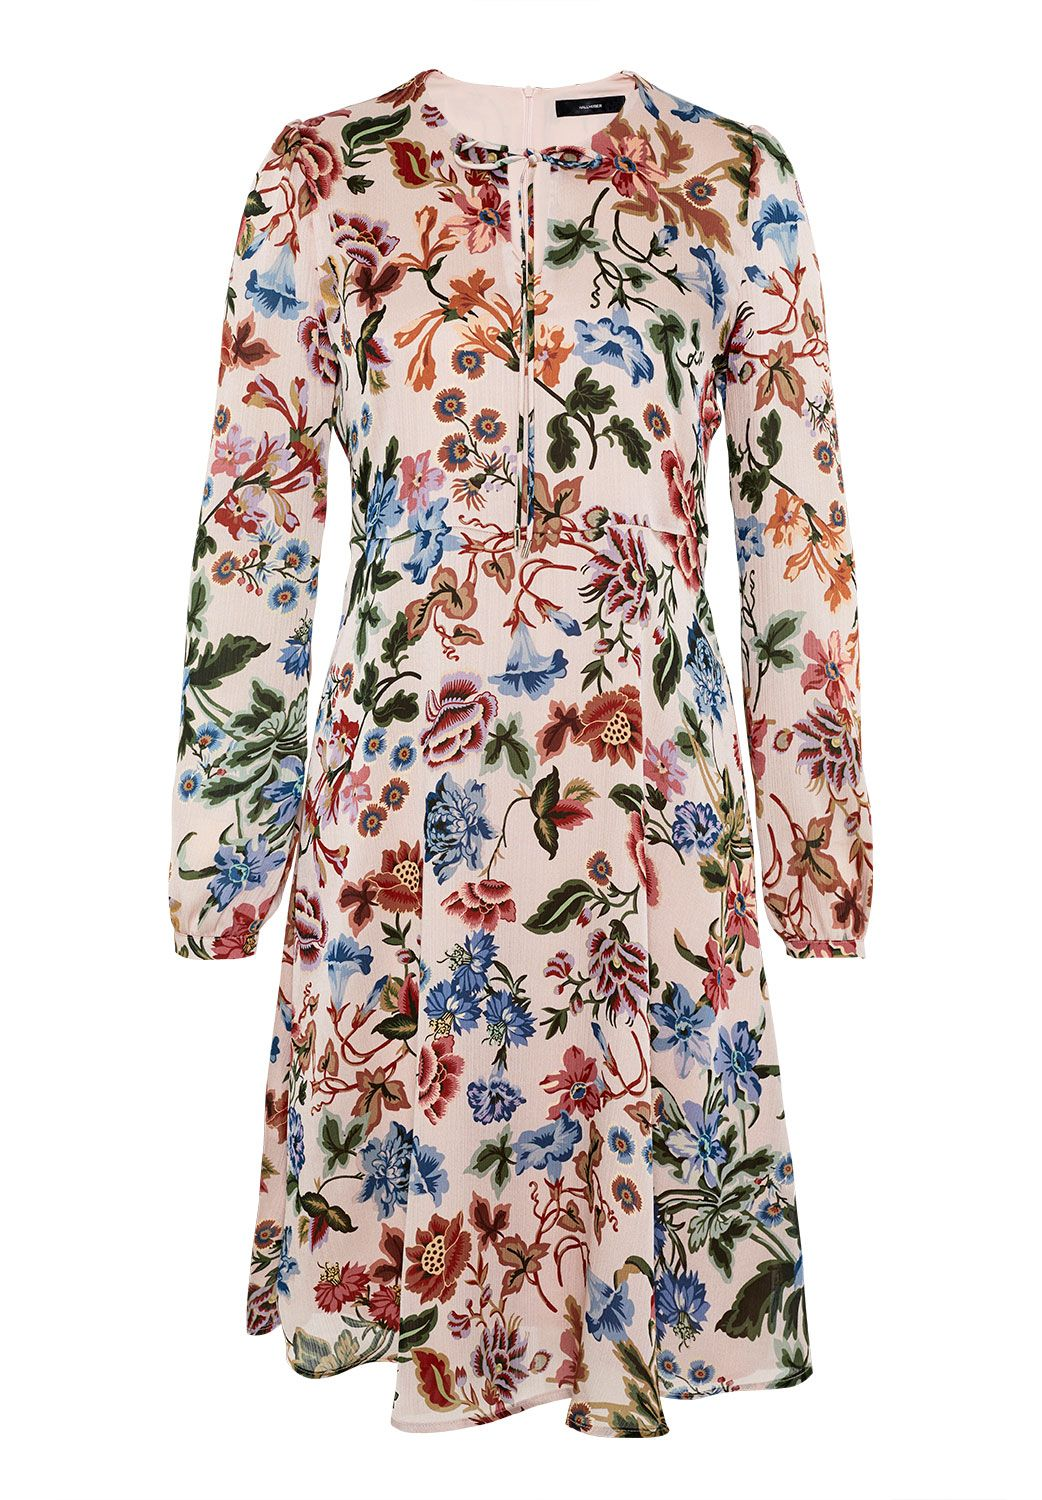 Hallhuber Floral A-line dress, Multi-Coloured